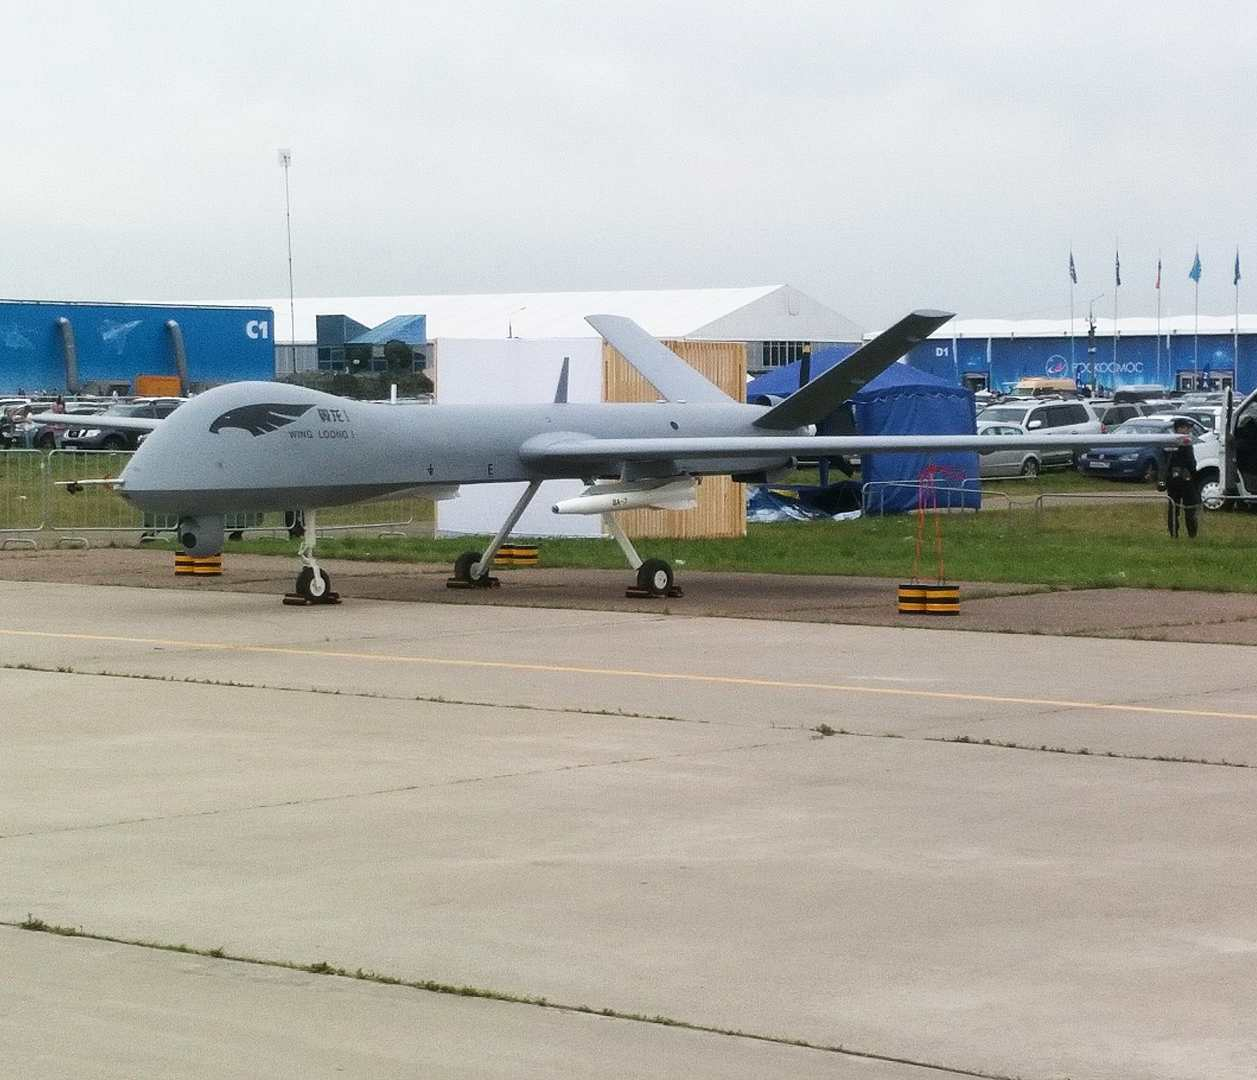 Chengdu Pterodactyl I a.k.a. Wing Loong UAV side view at a recent airshow.